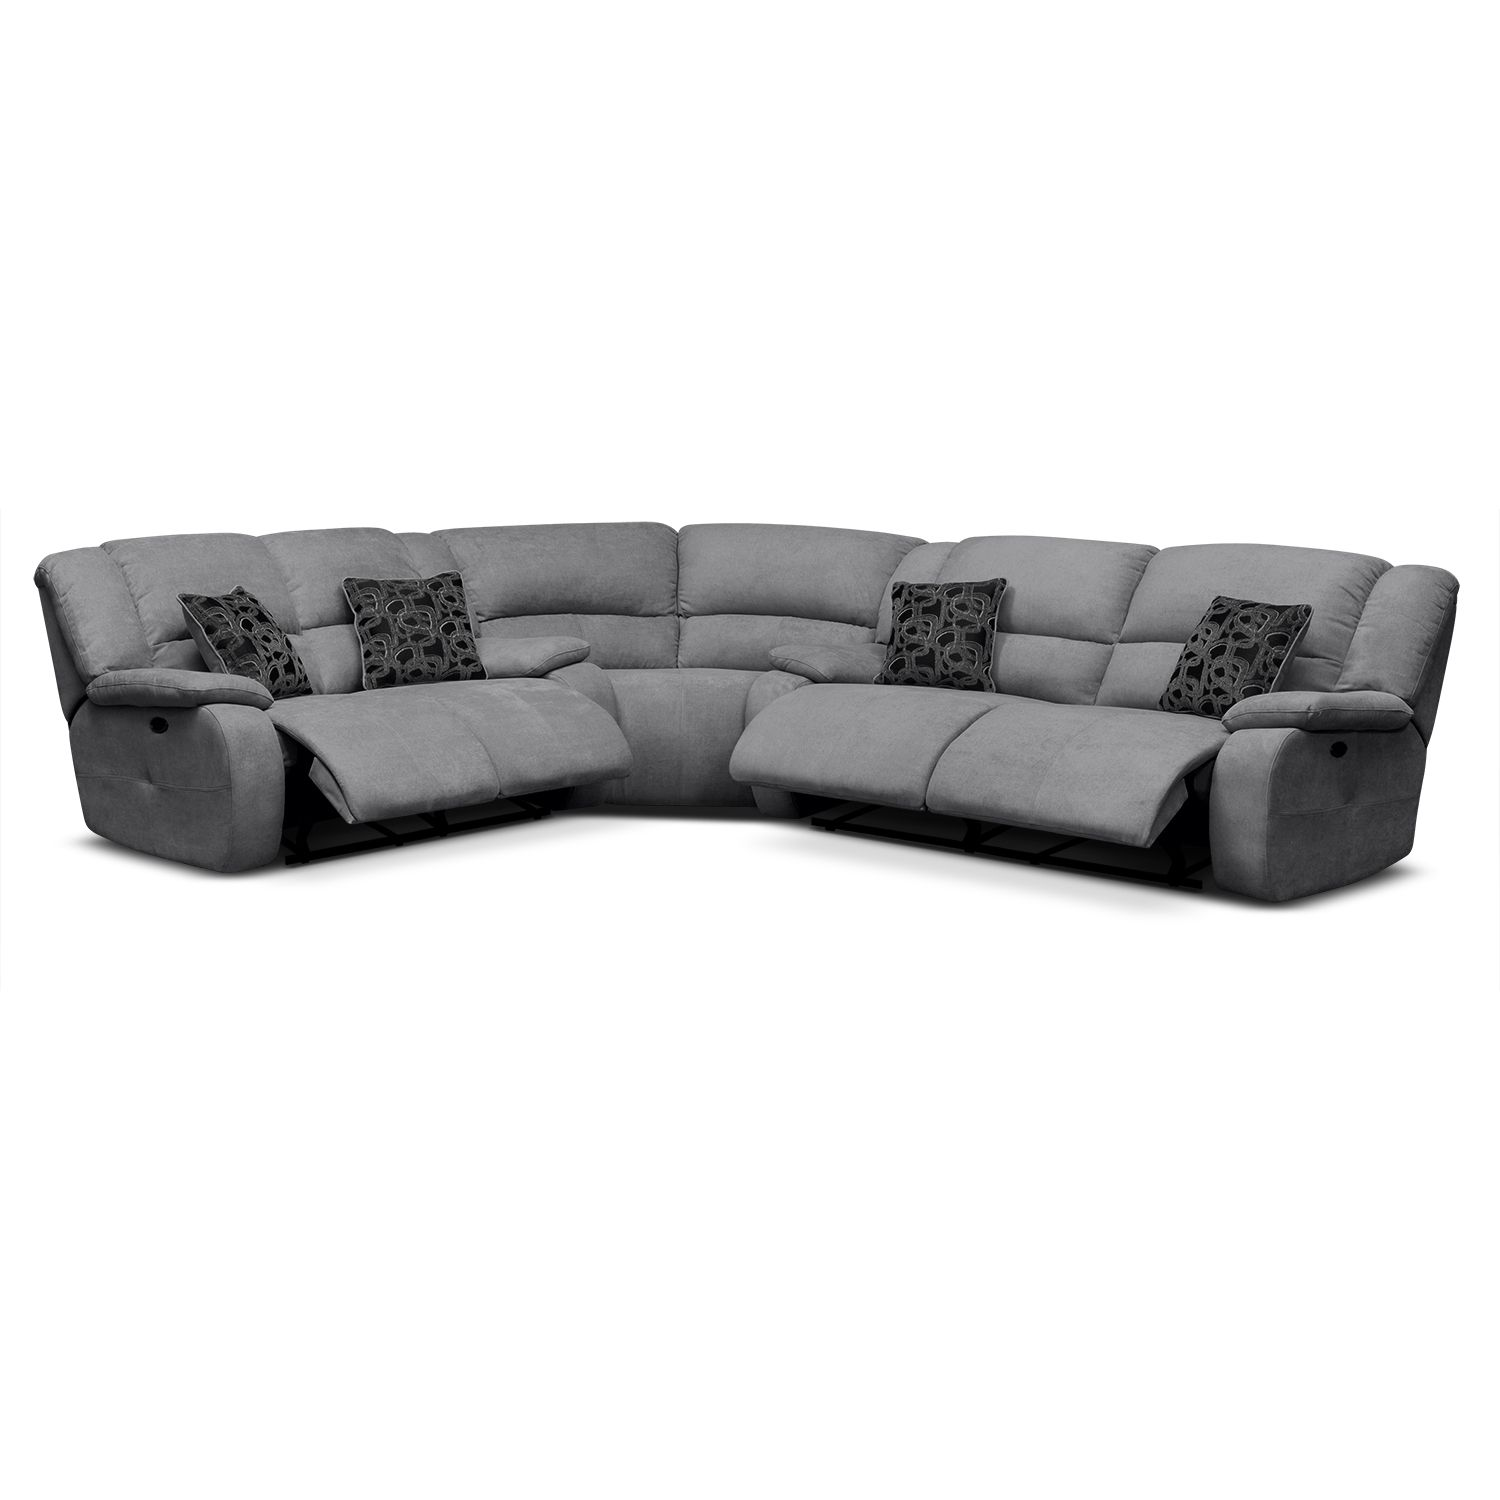 Living Room Furniture - Destin Gray II 3 Pc. Power Reclining ...